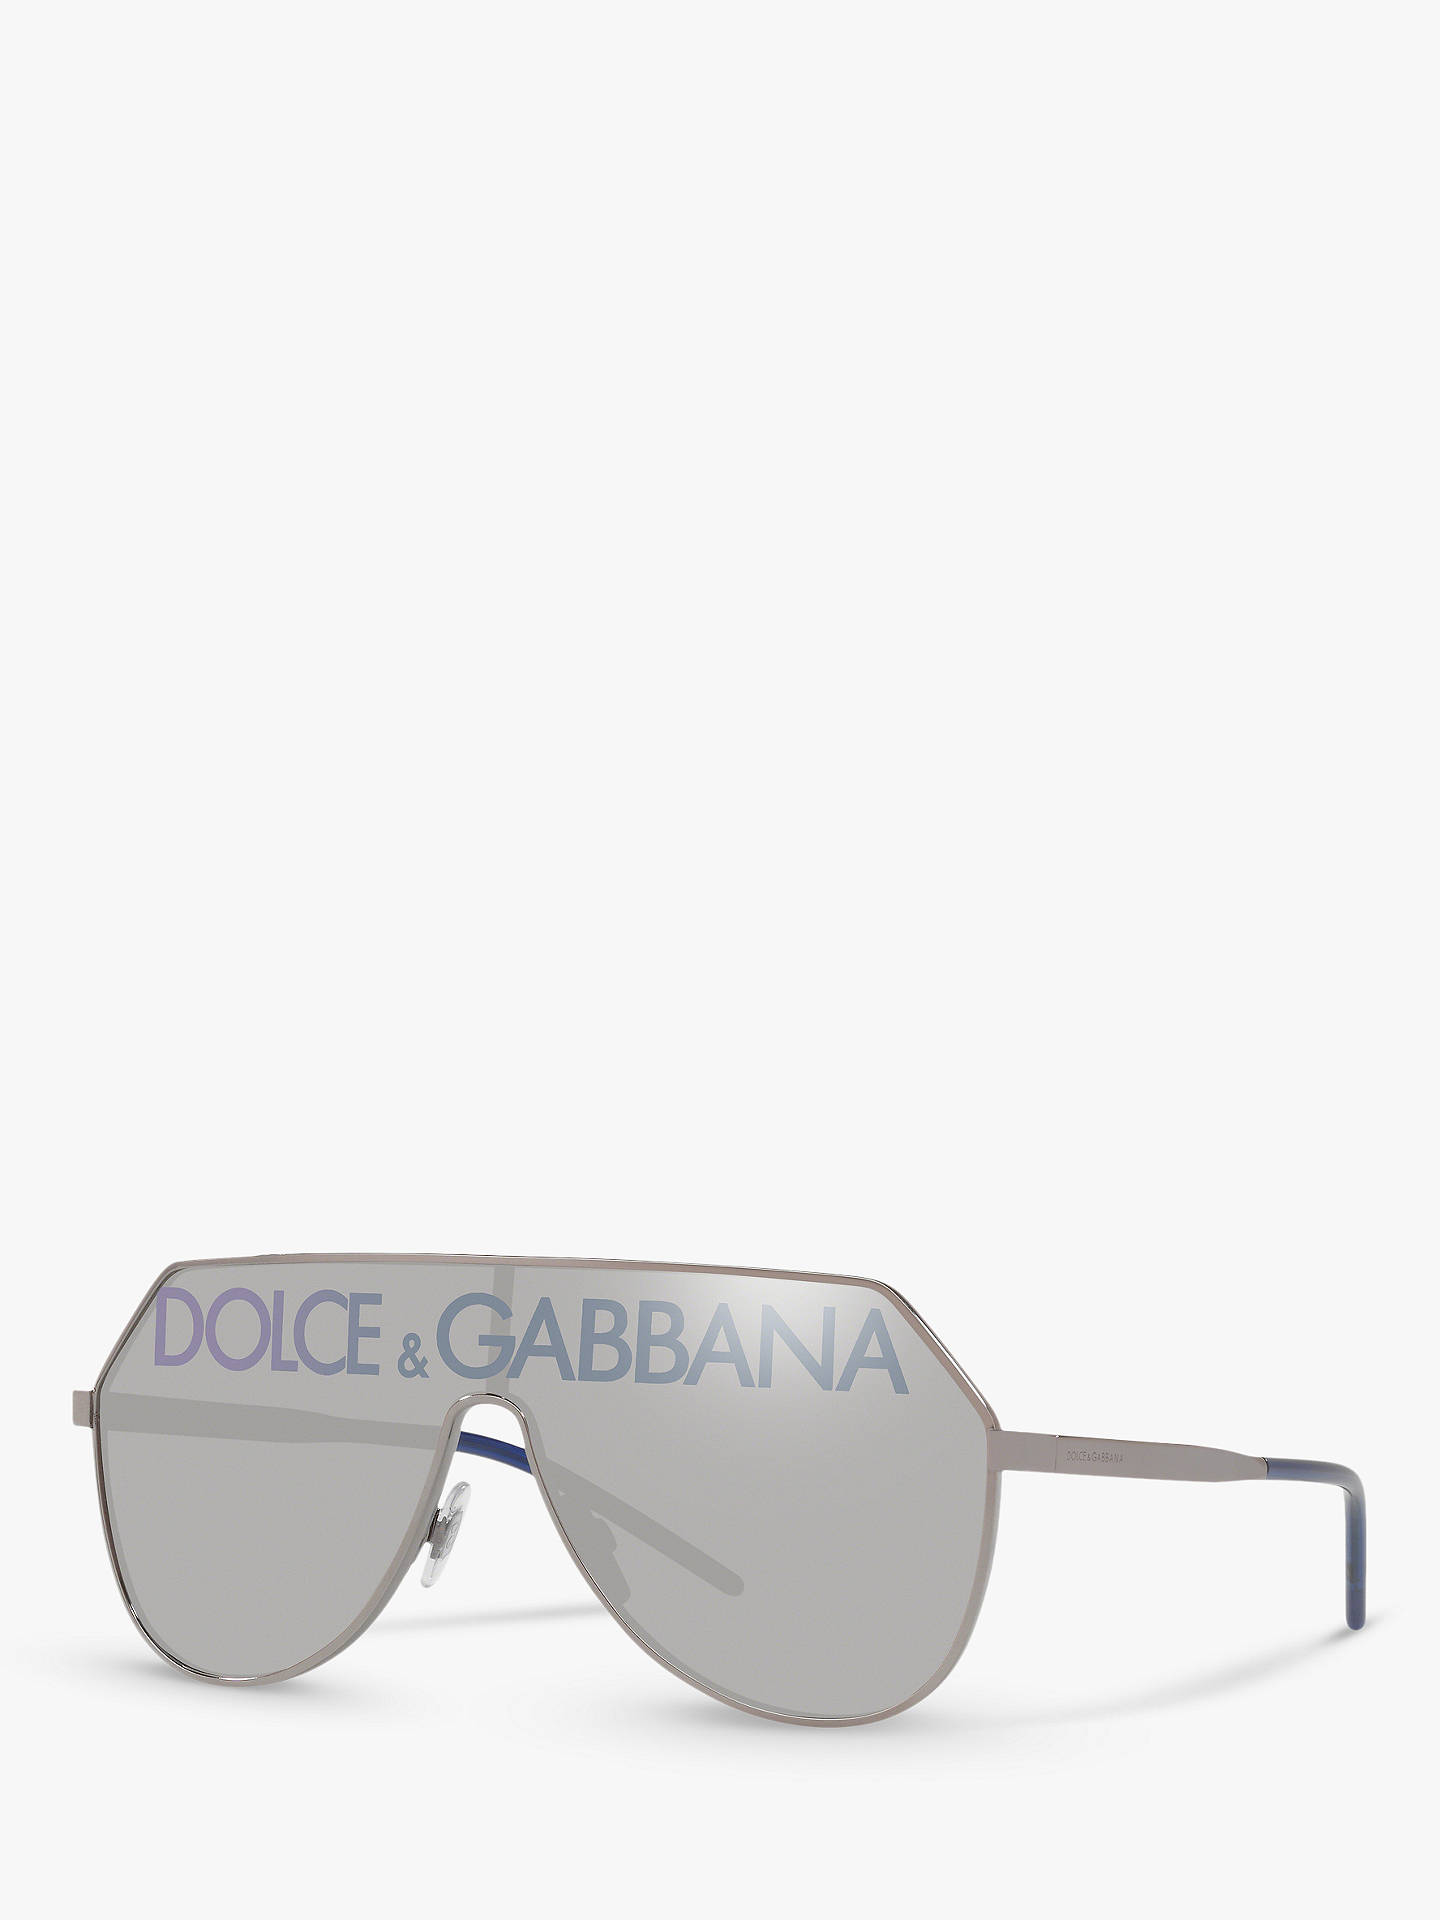 84e9cf3d502e Dolce   Gabbana DG2221 Men s Aviator Sunglasses at John Lewis   Partners